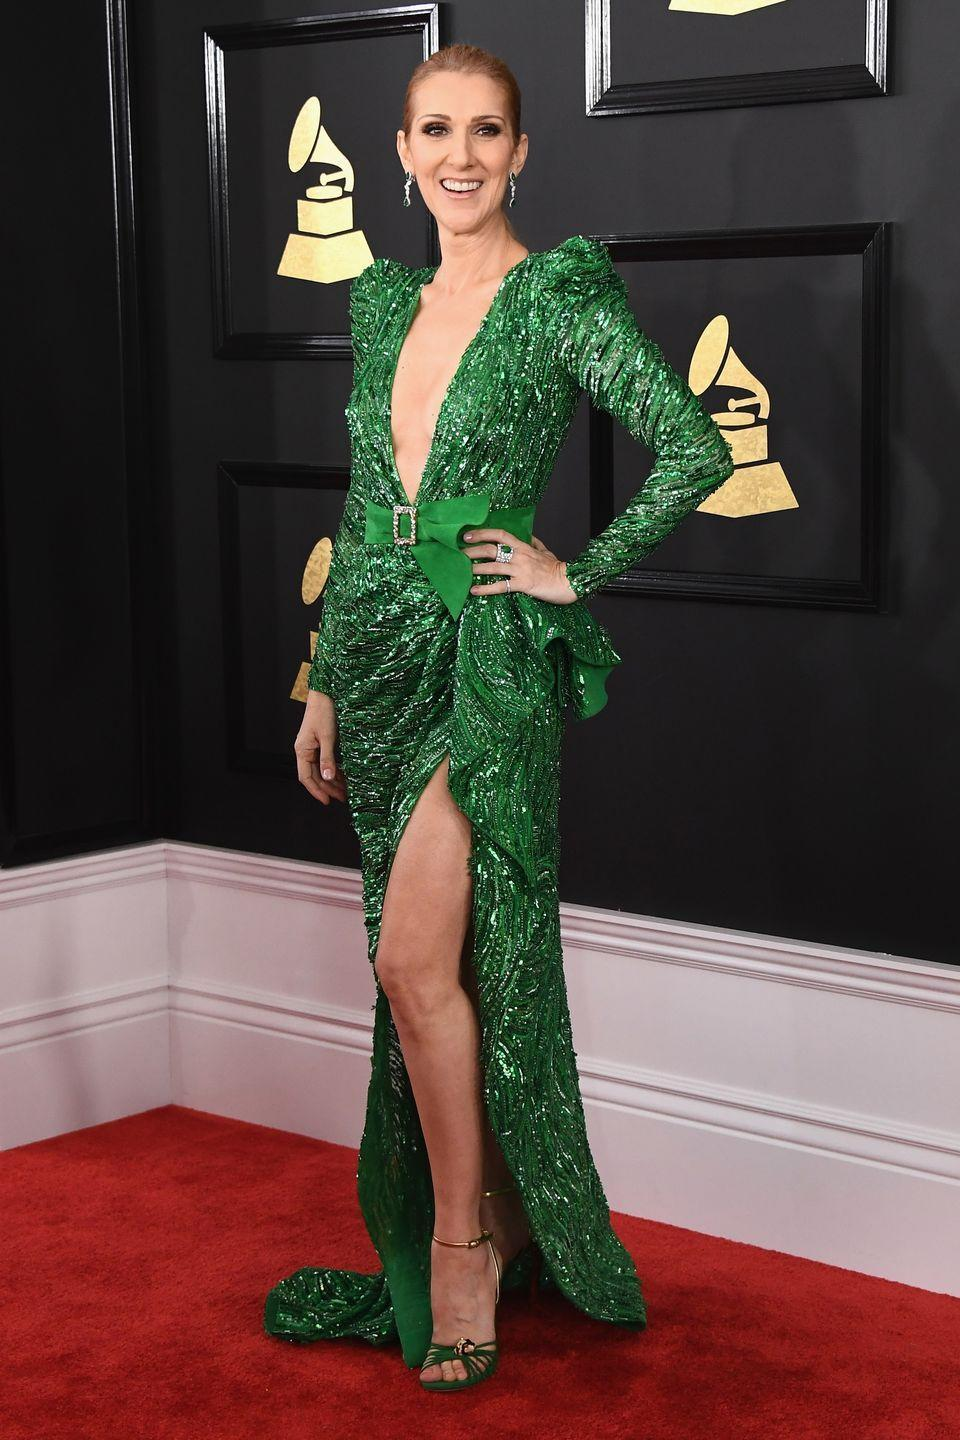 <p>The singer stunned in a plunging emerald gown featuring a thigh-high slit by Zuhair Murad at the Grammy Awards. </p>